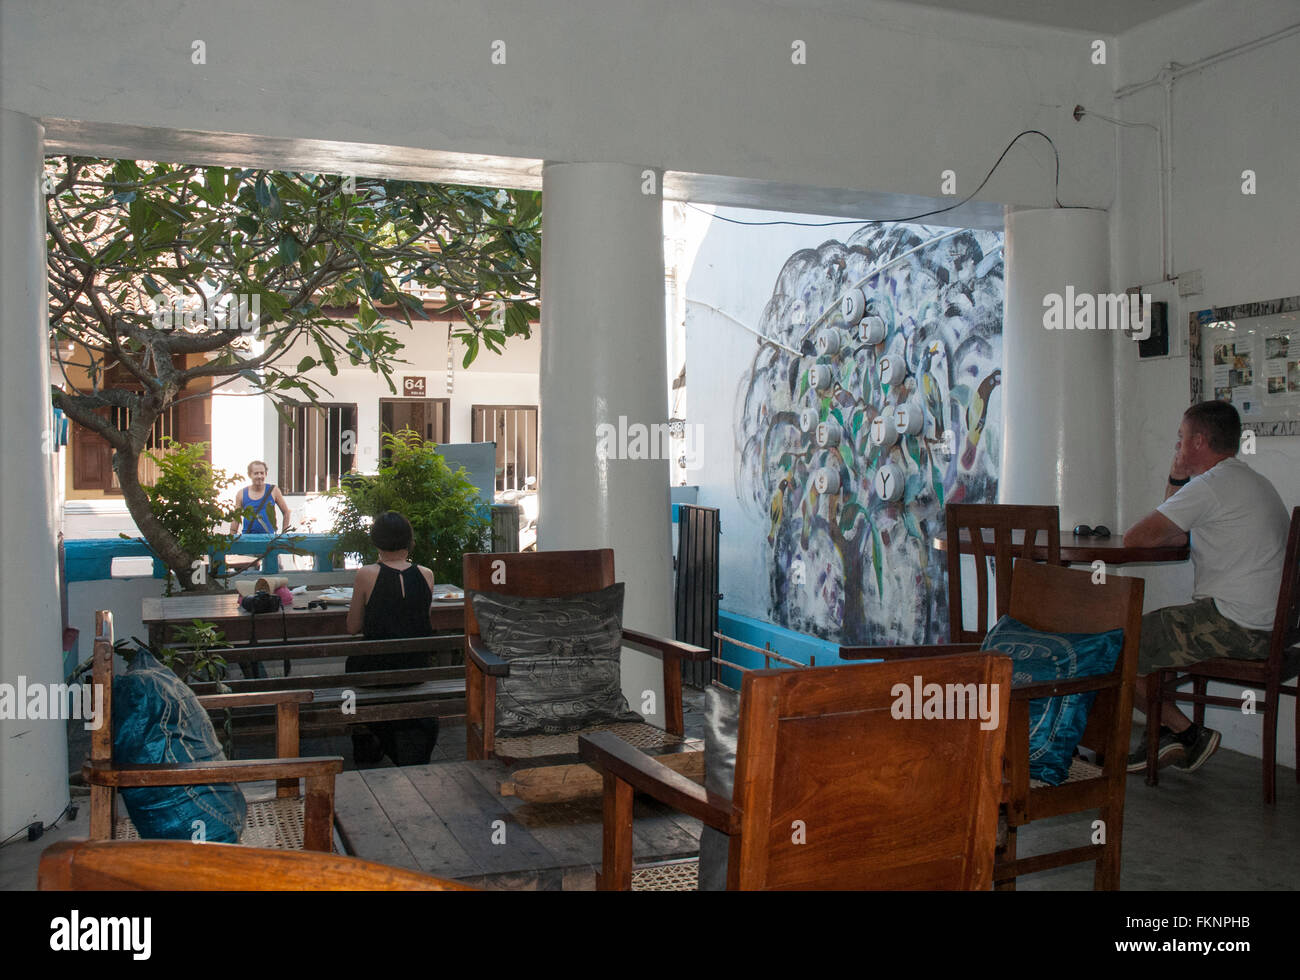 Inside Sri Serendipity Arts Cafe Galle Fort Lanka